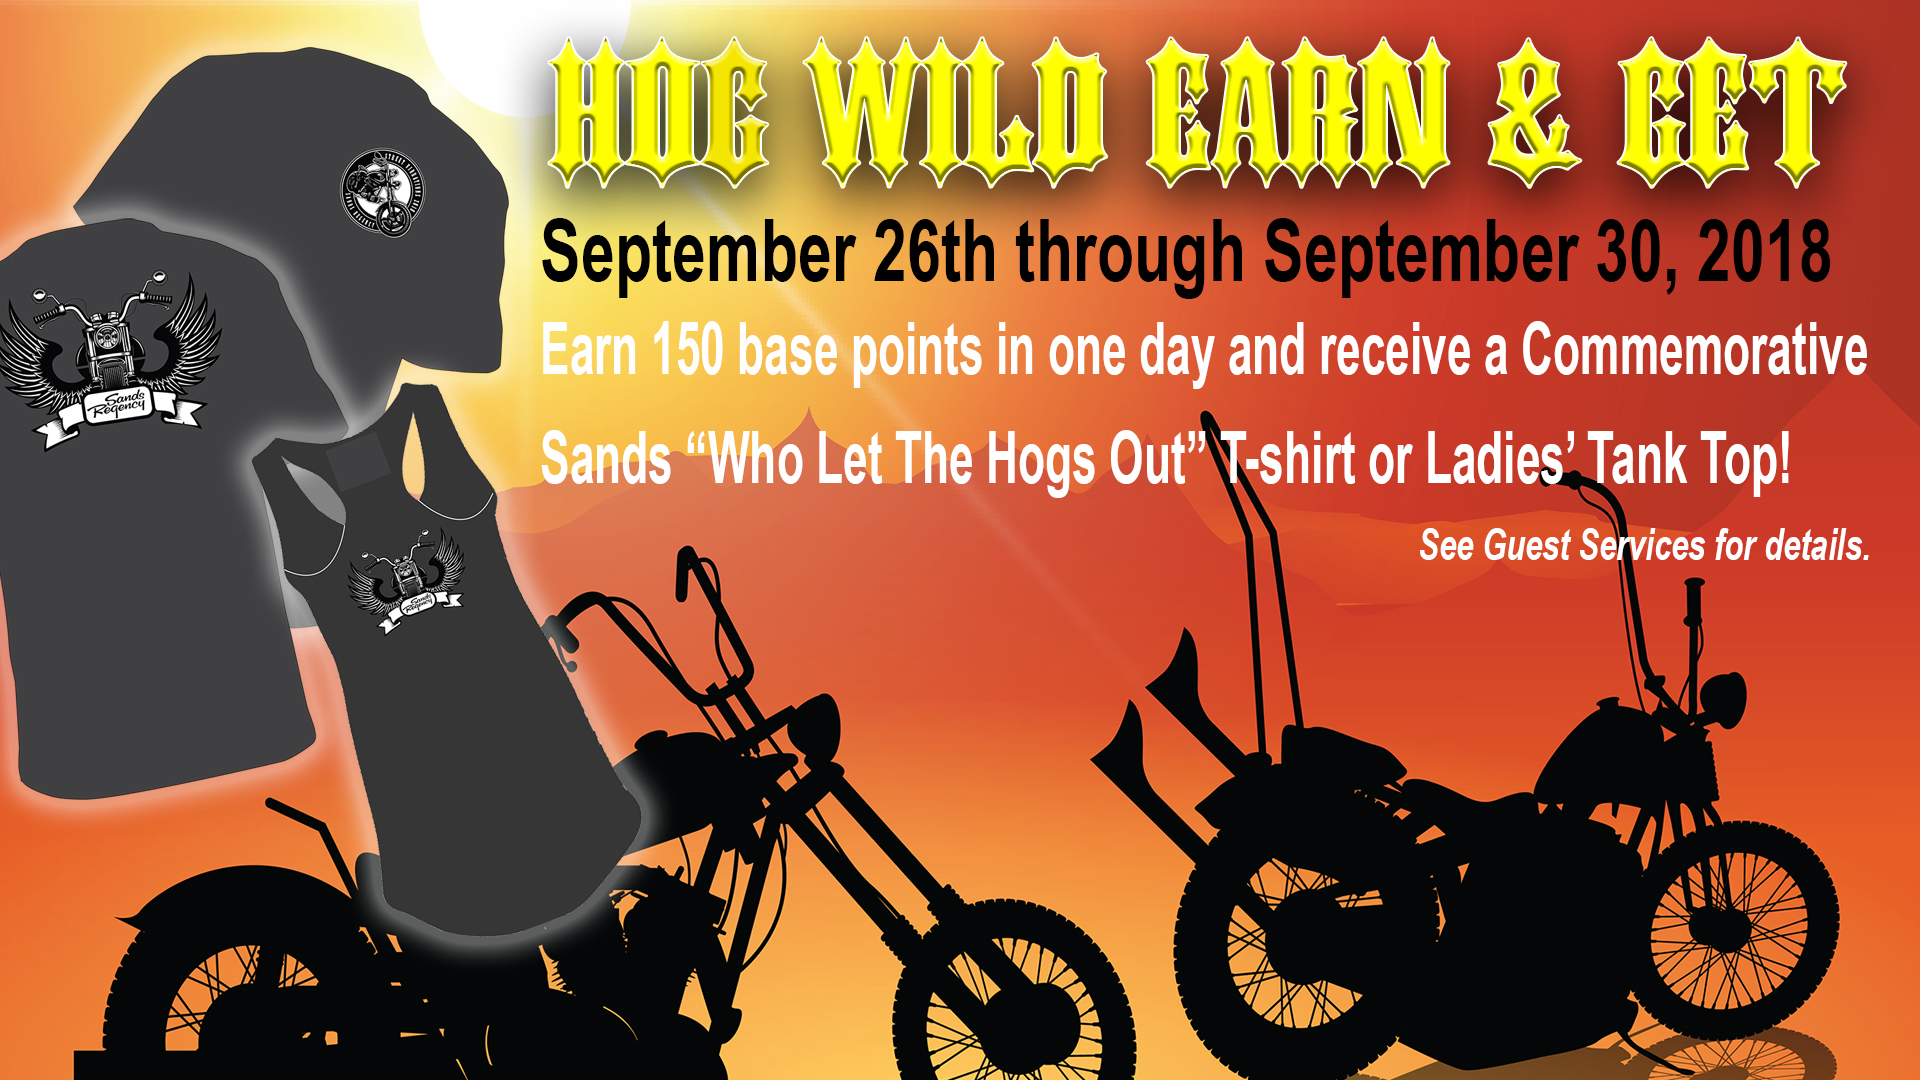 Sands Hog Wild Earn and Get